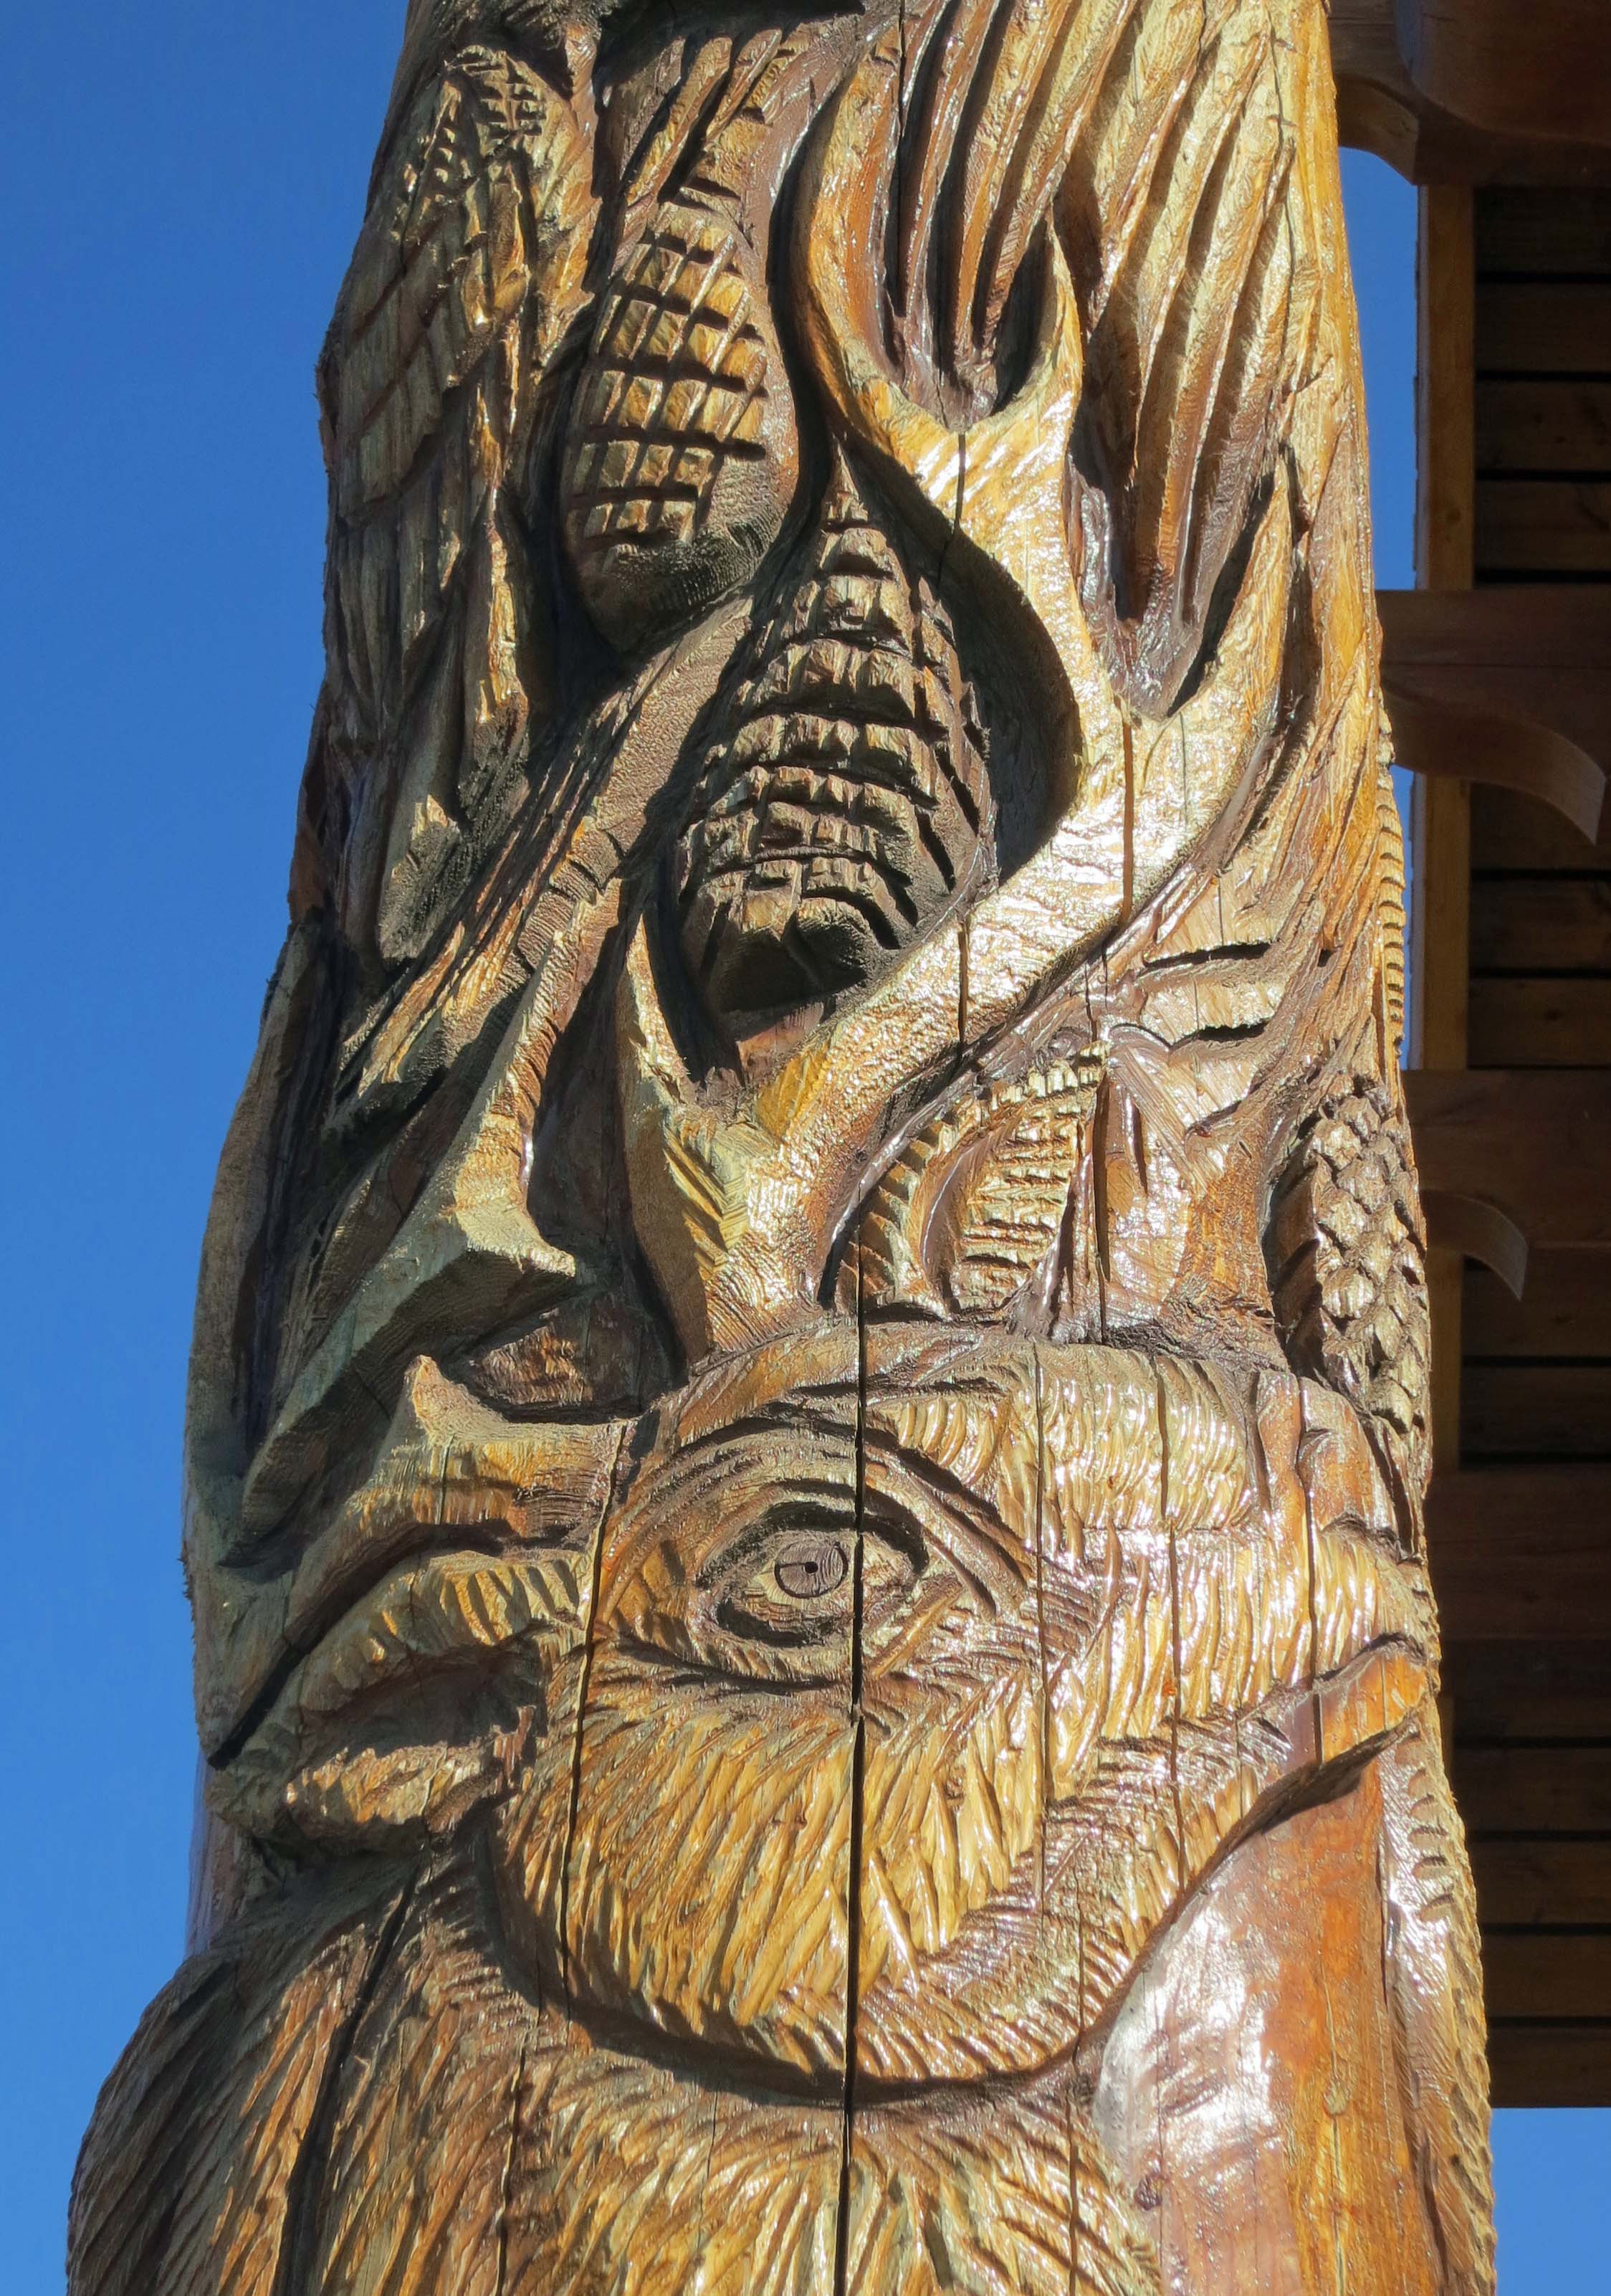 The delicate art of chainsaw wood carving part … north